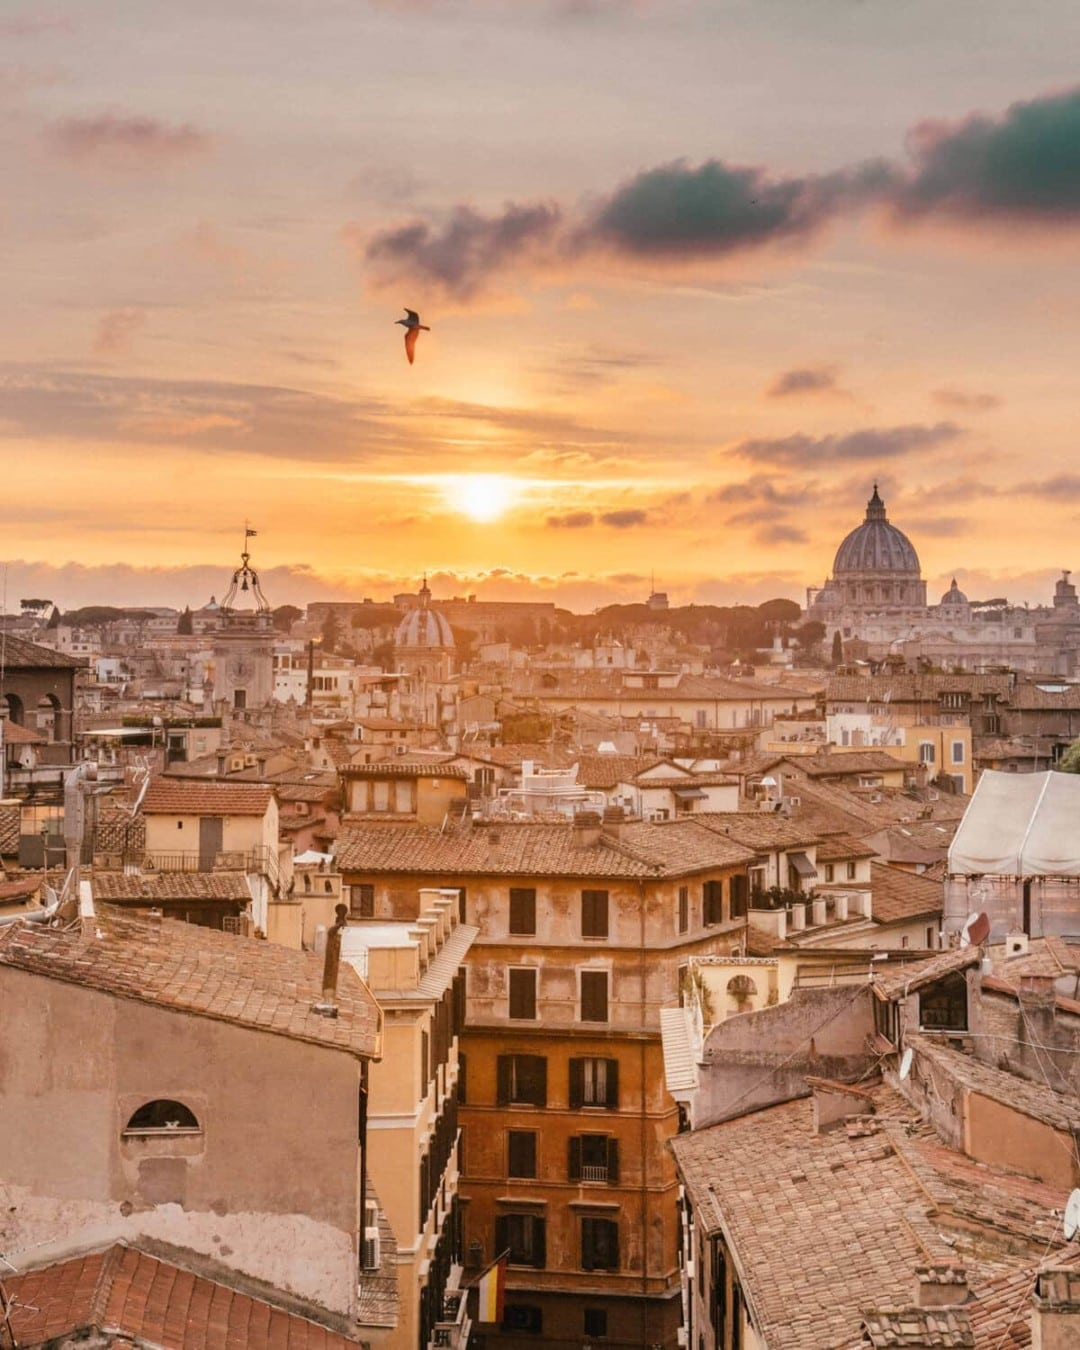 Terrazza Wanderlust A Full Review Of The Best Tours In Rome With City Wonders Live